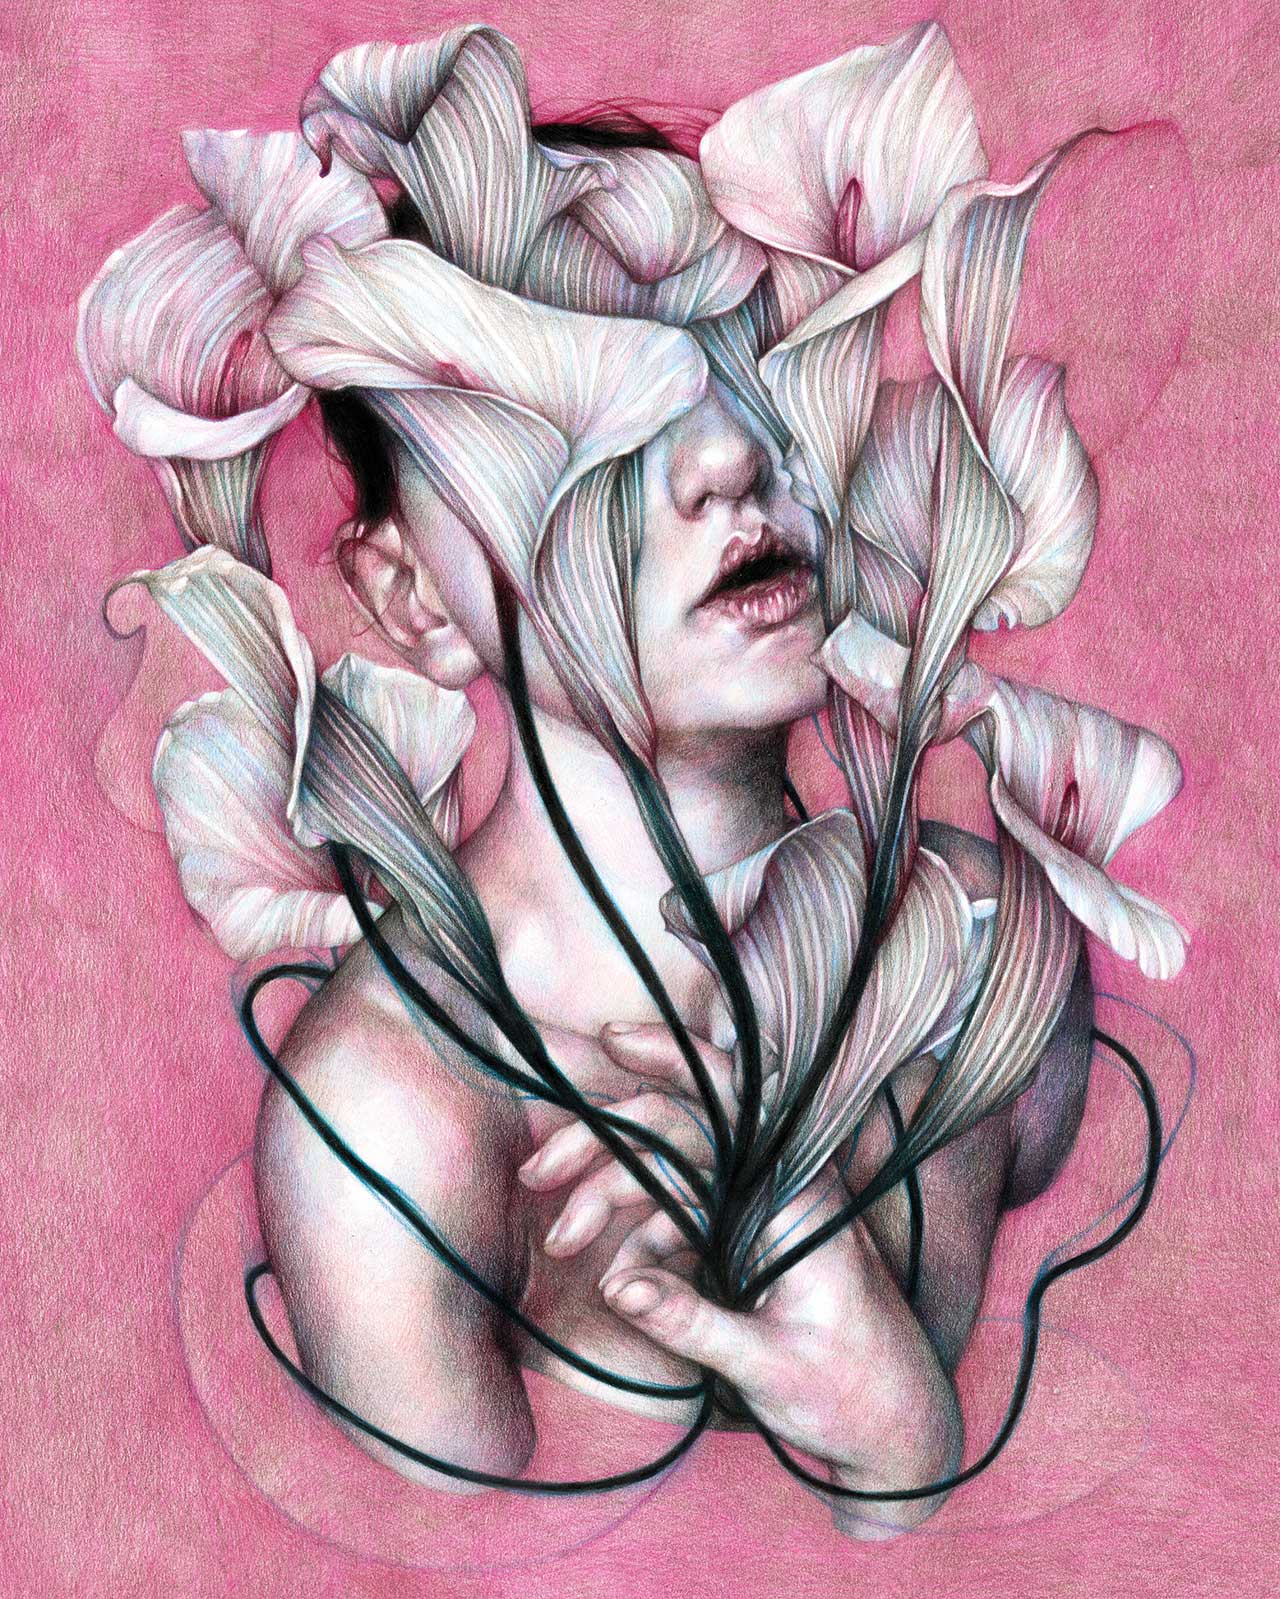 Marco Mazzoni, Insecurity. Colored pencils on paper, 48 x 38cm  © Marco Mazzoni.